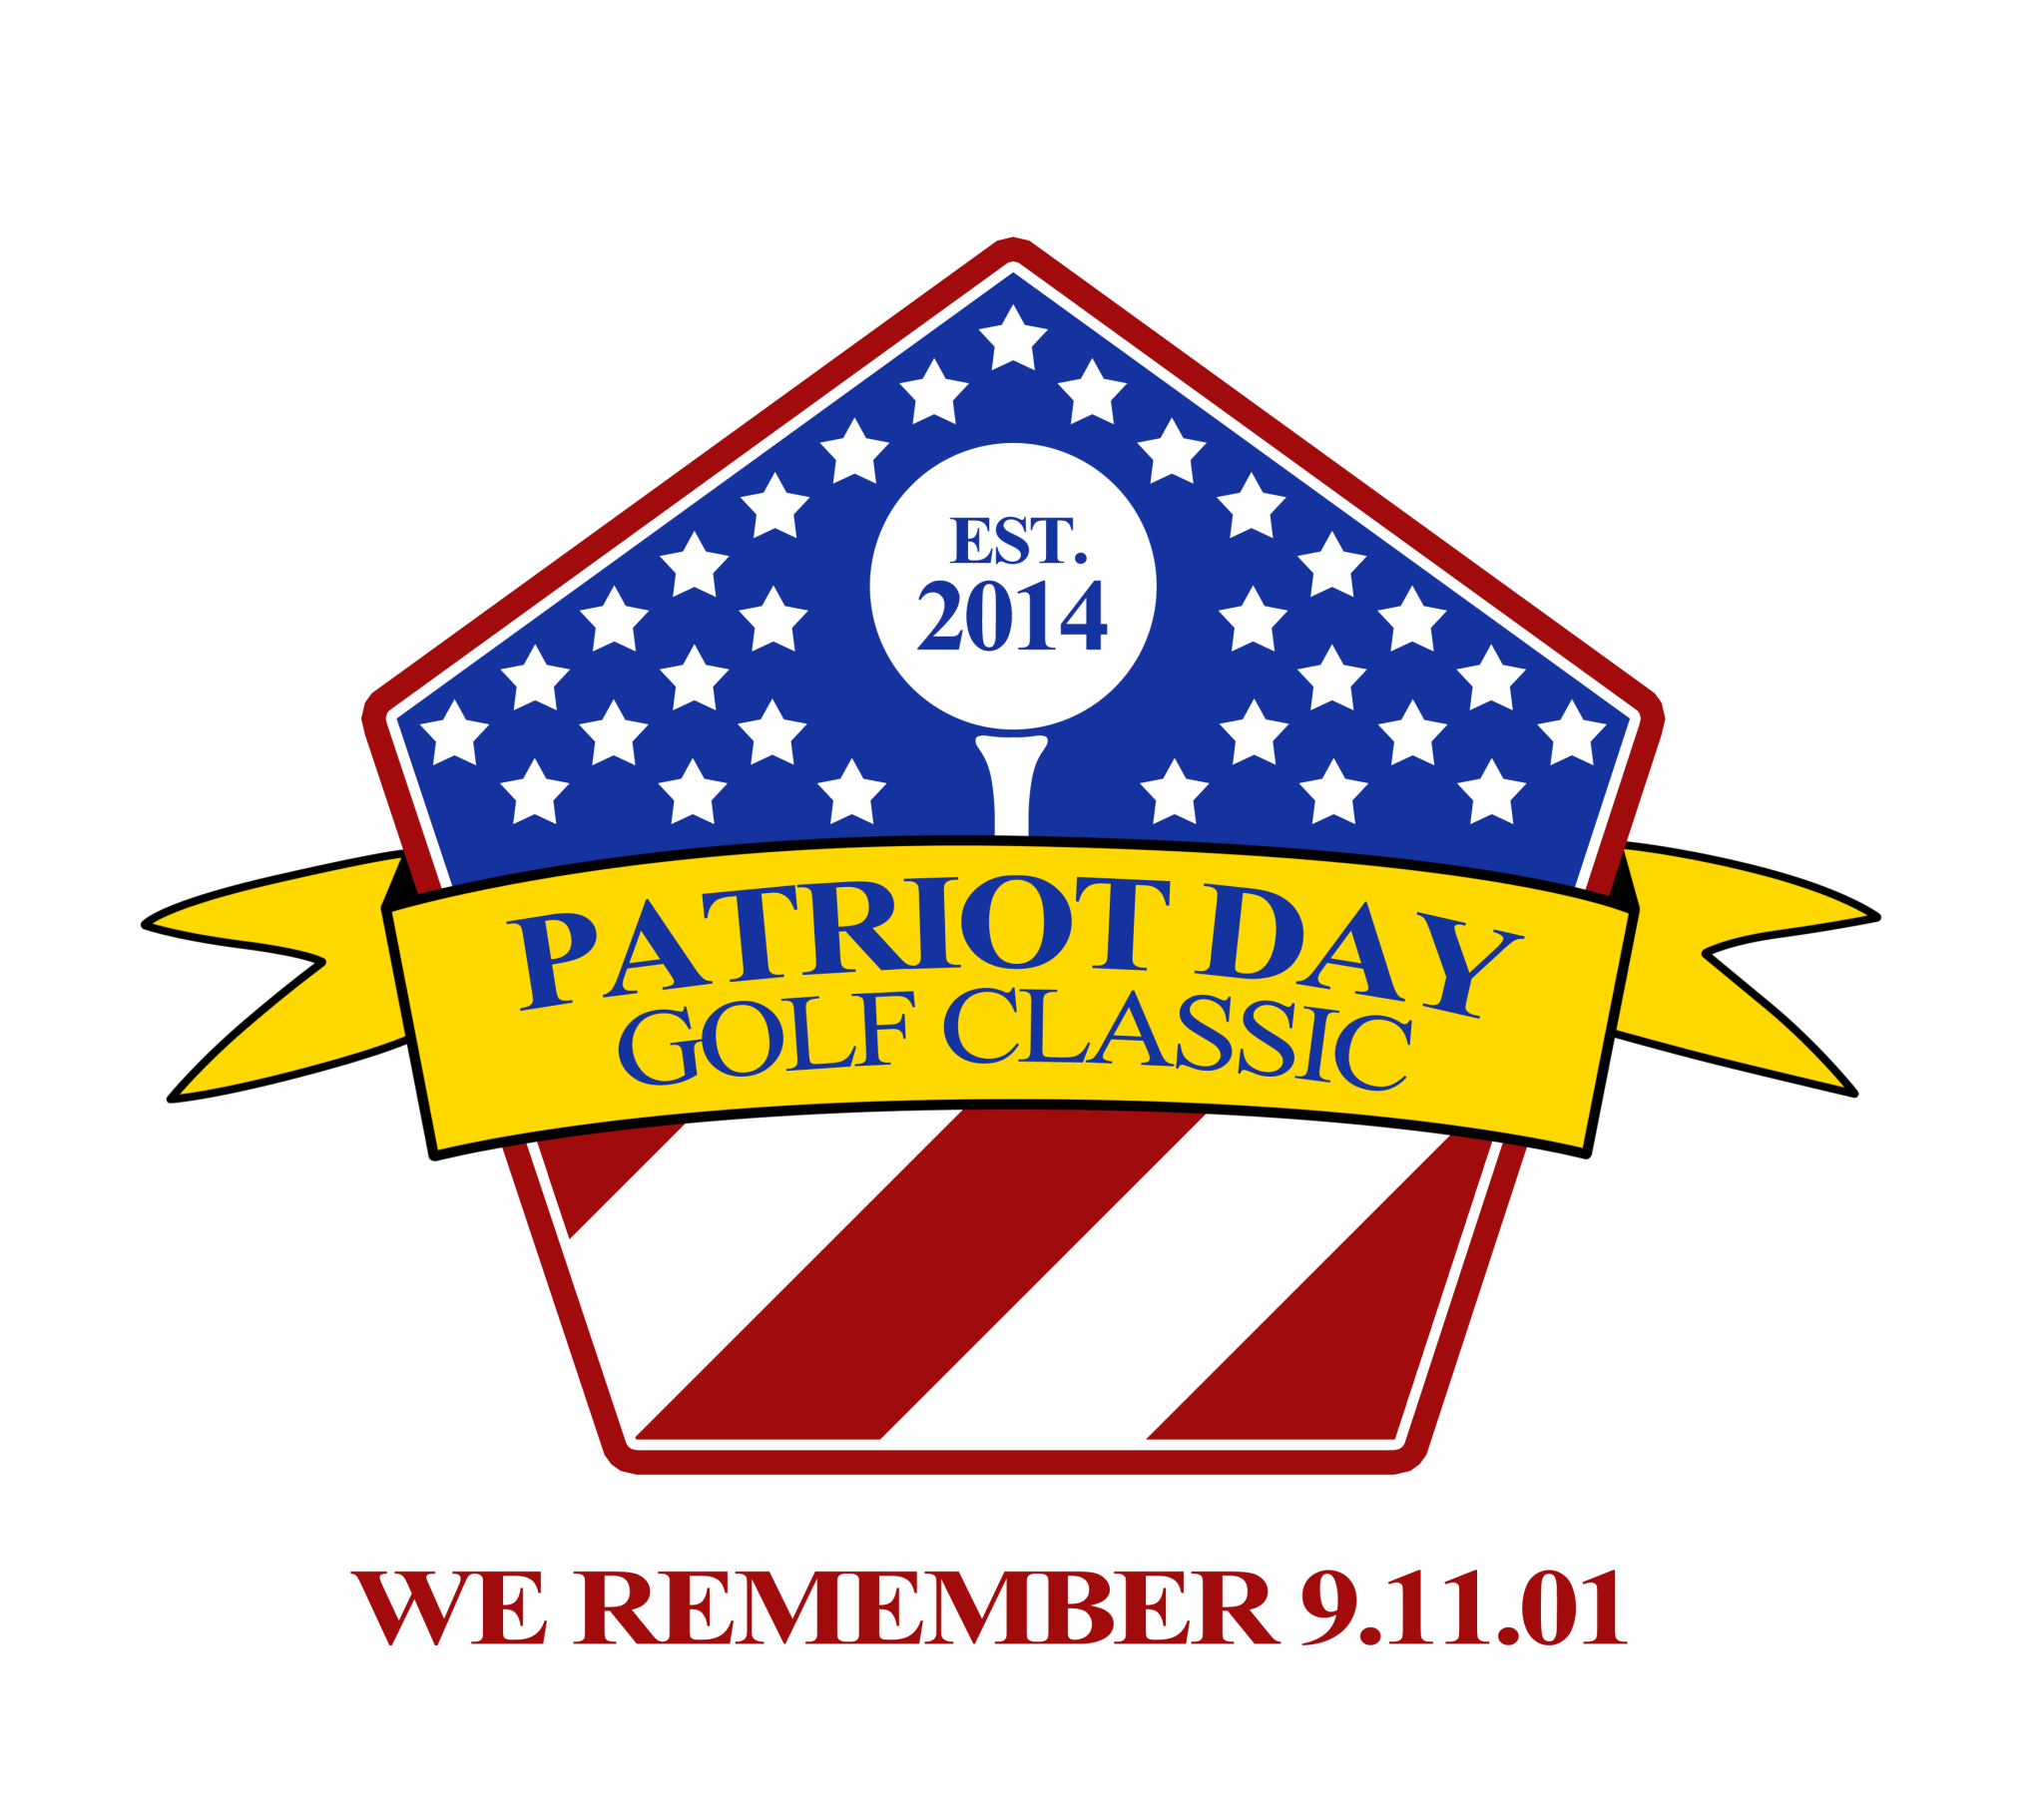 Patriots day logo png. Patriot golf classic belle